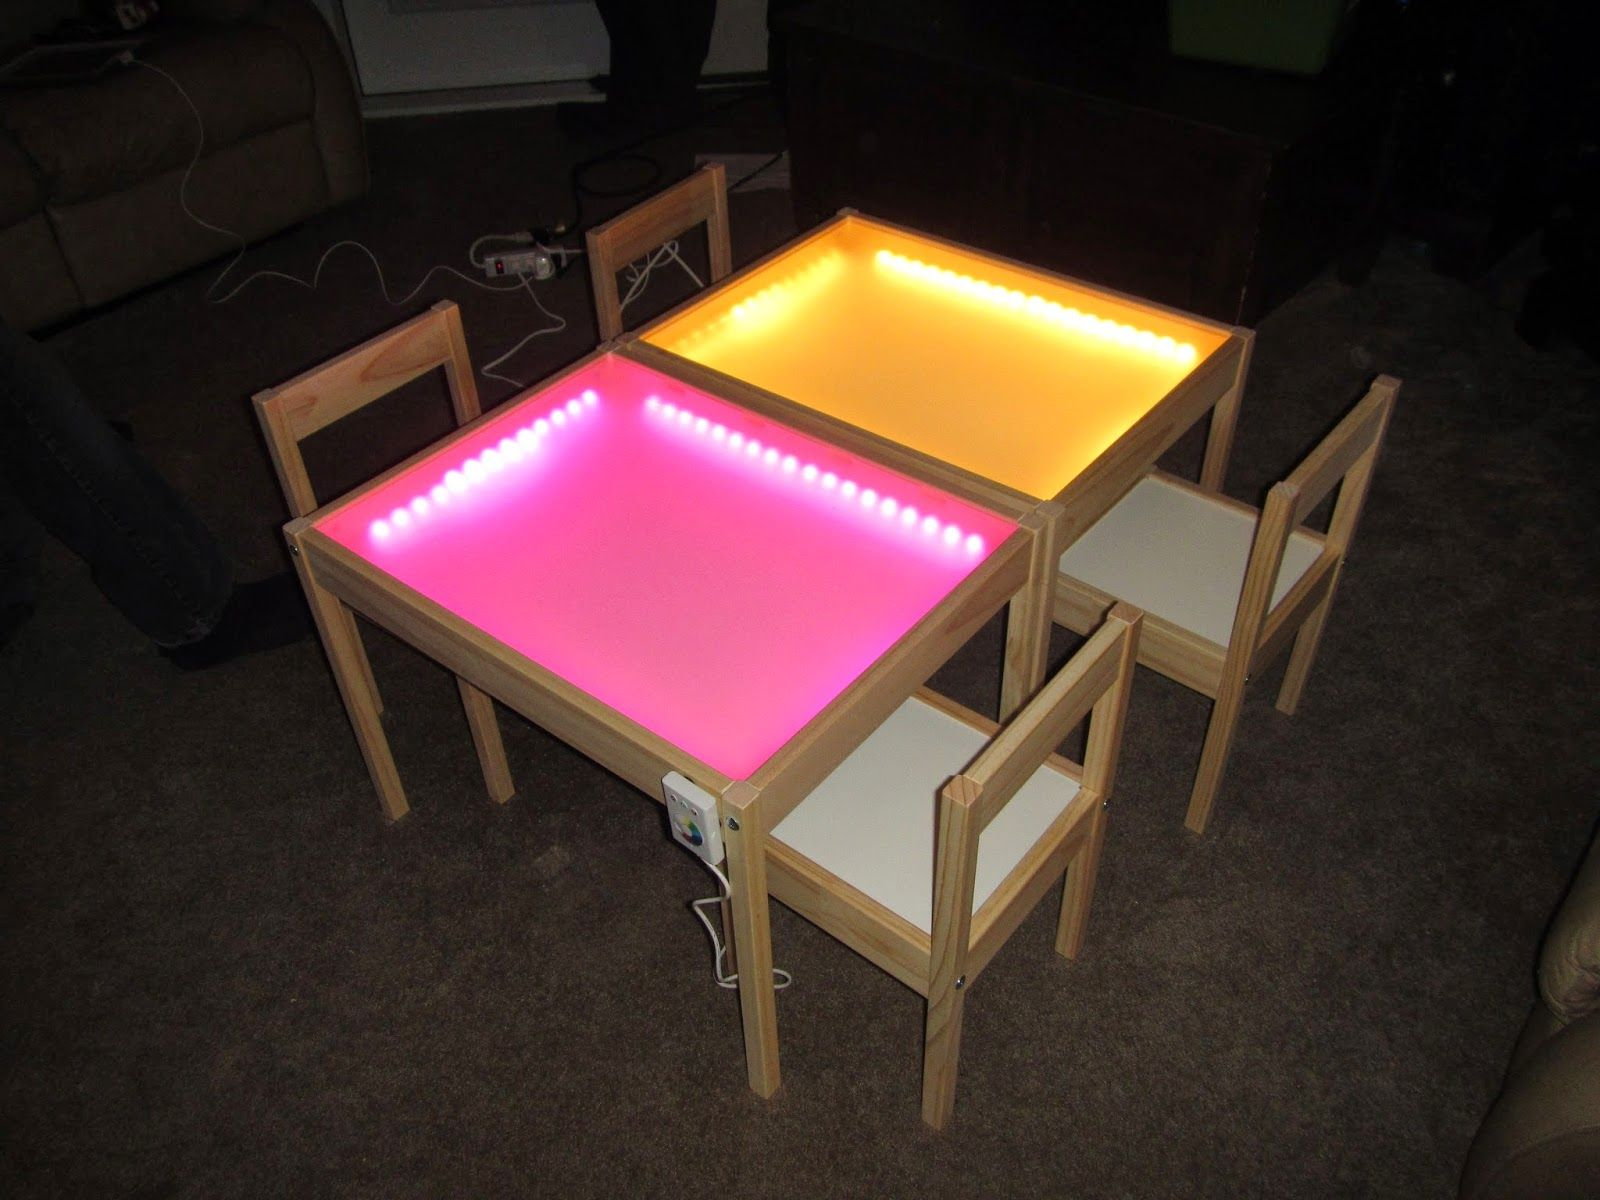 light table tisch led streifen plexiglas eventuell. Black Bedroom Furniture Sets. Home Design Ideas